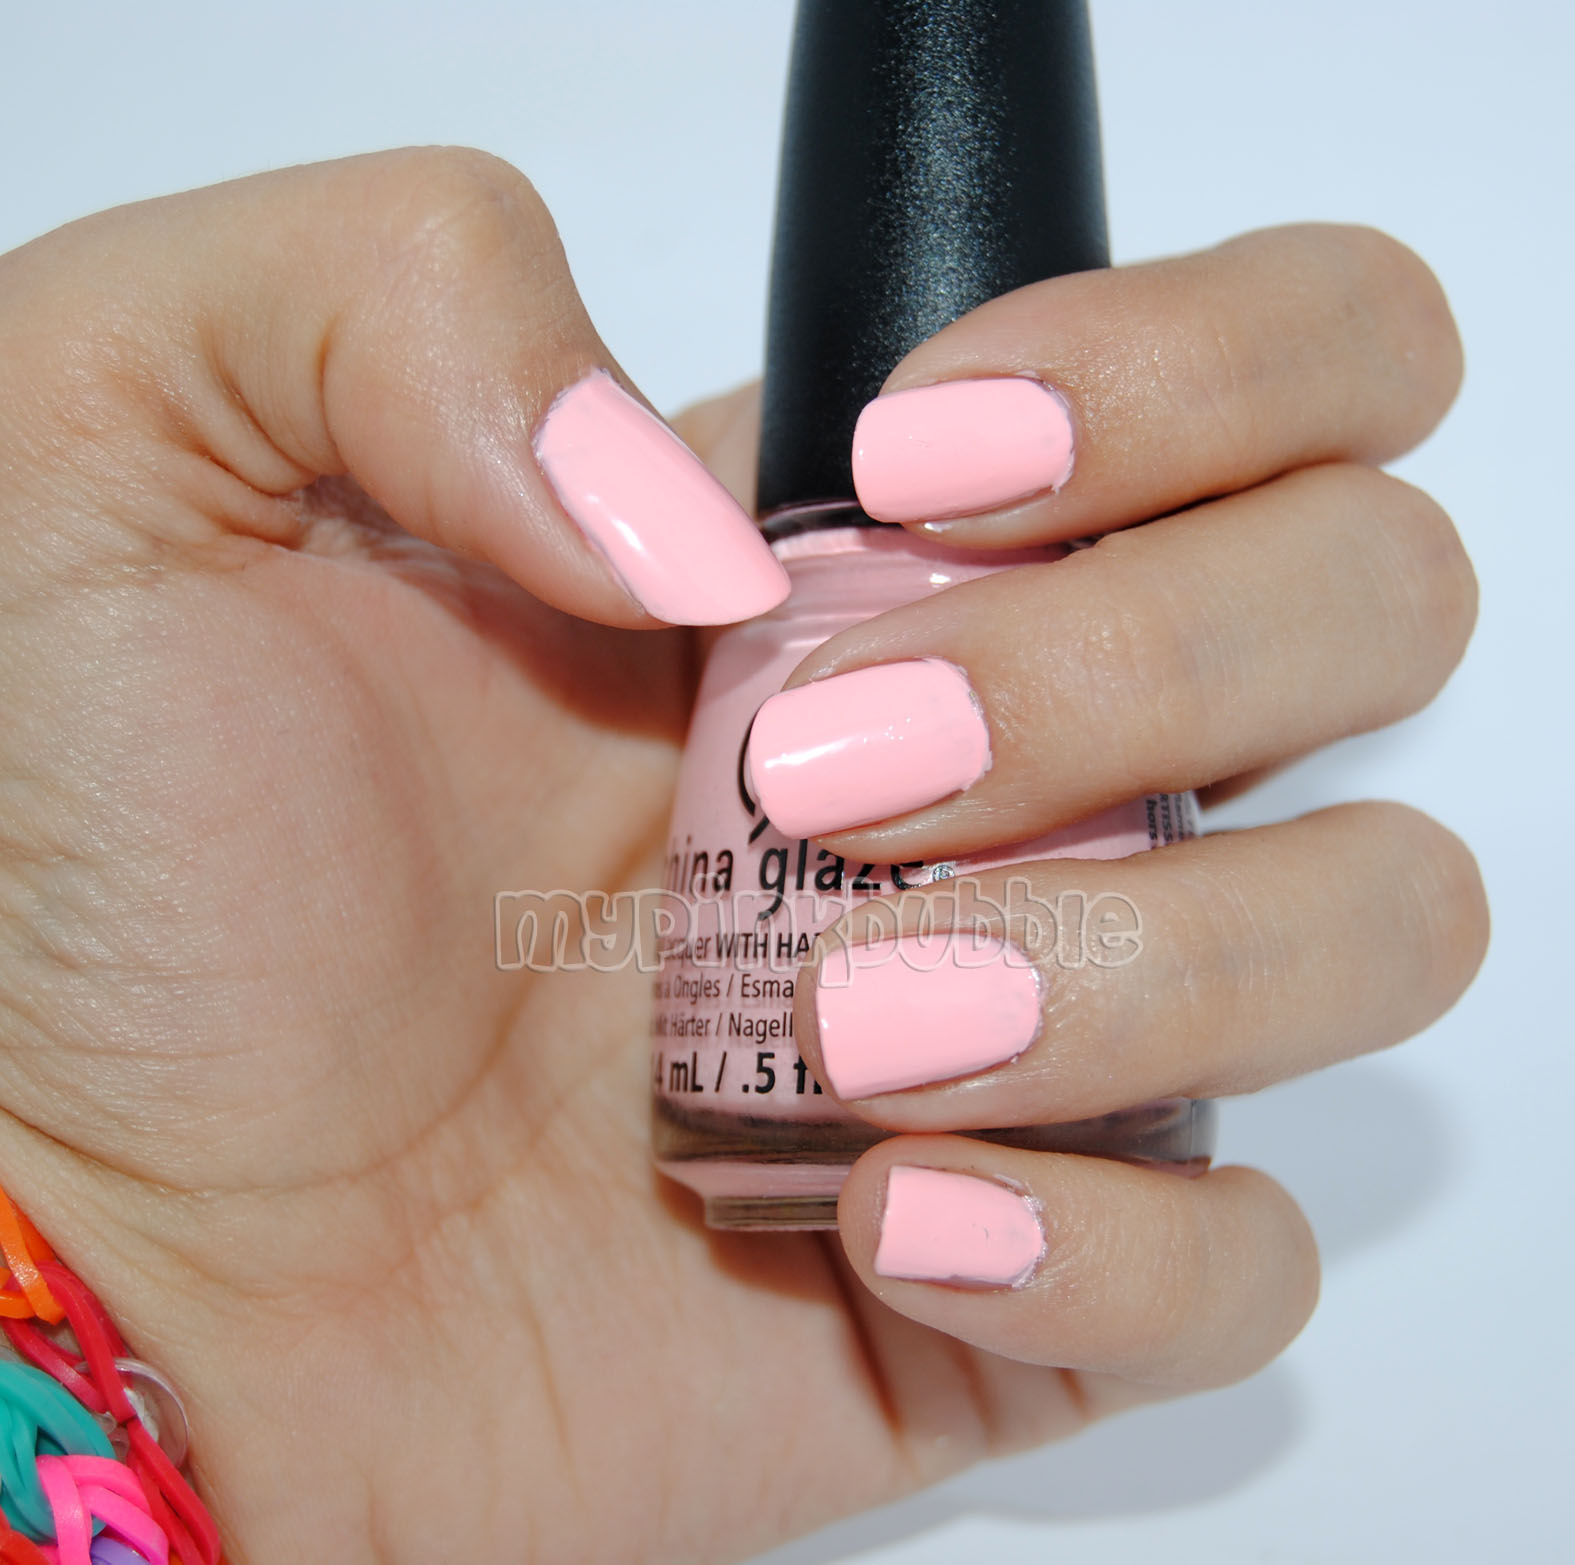 China Glaze Spring in my step swatch